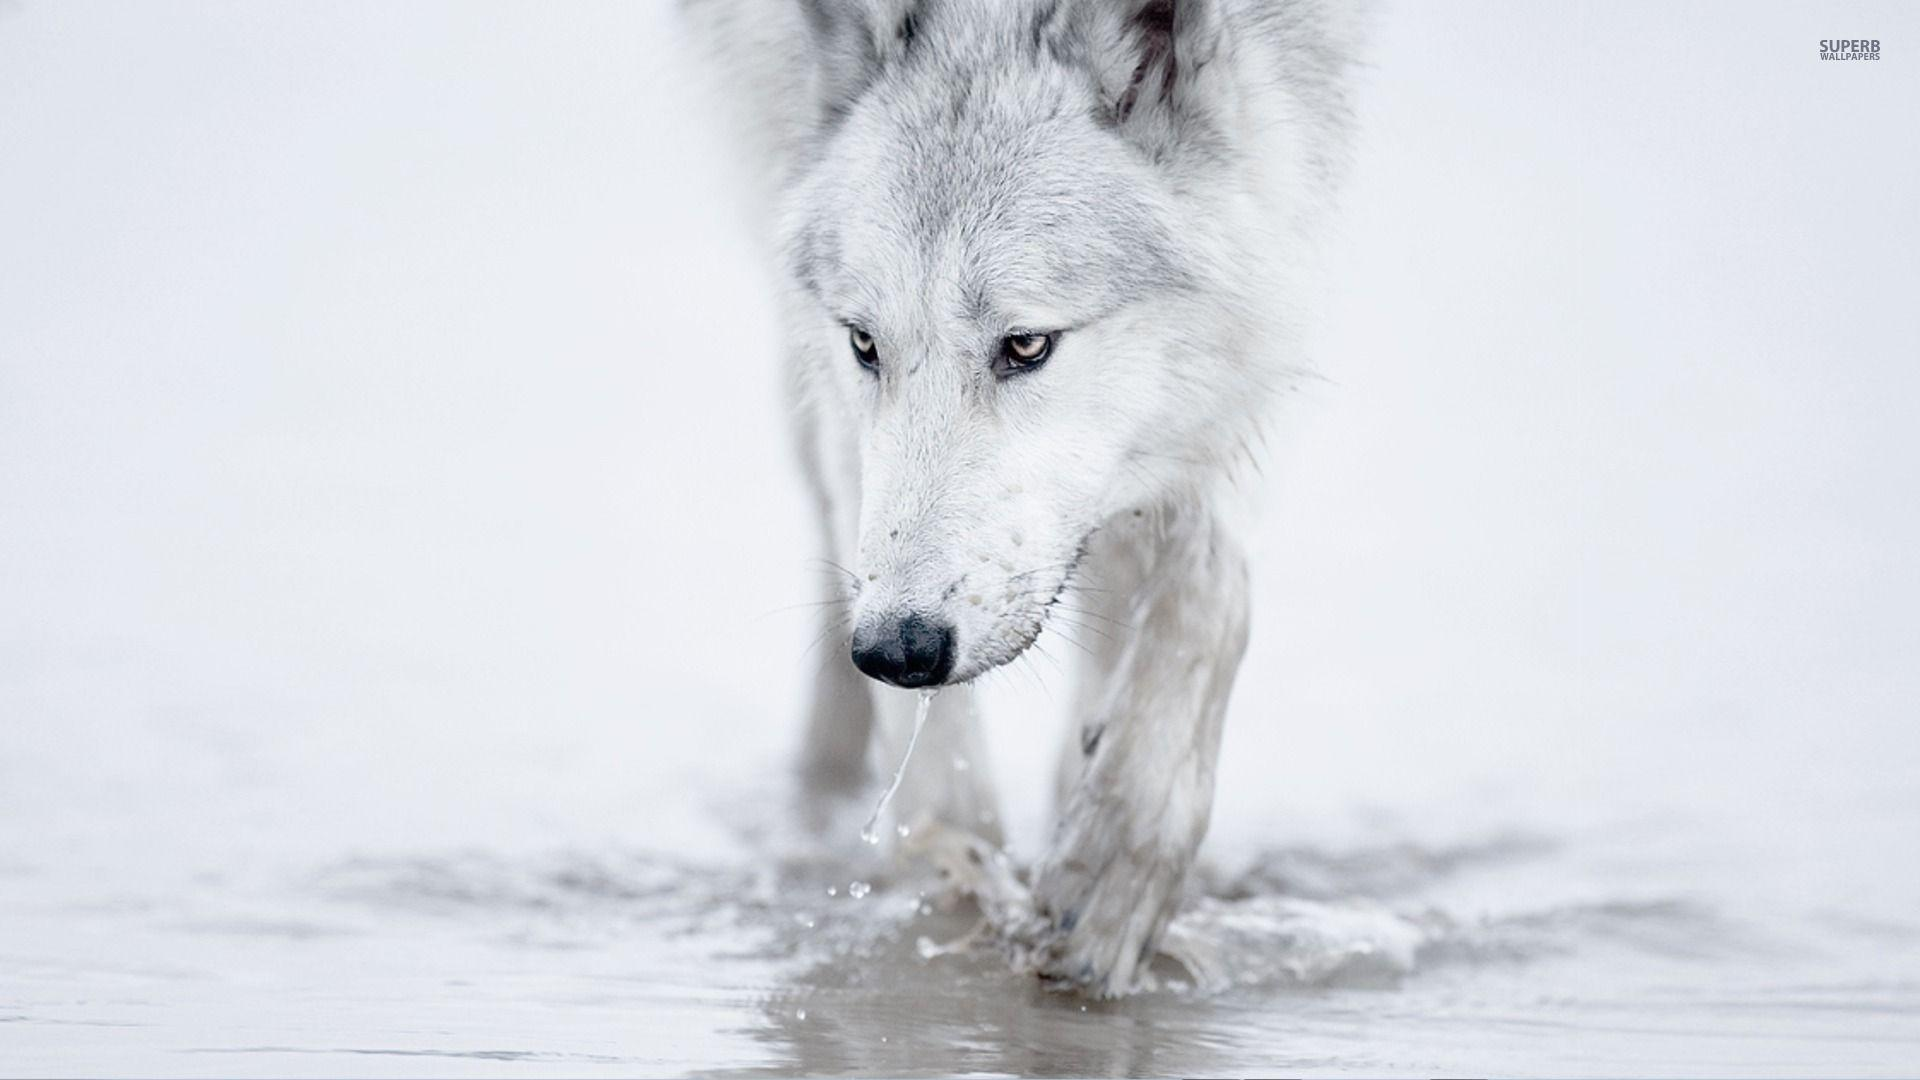 wolf wallpaper yorkshire - photo #31